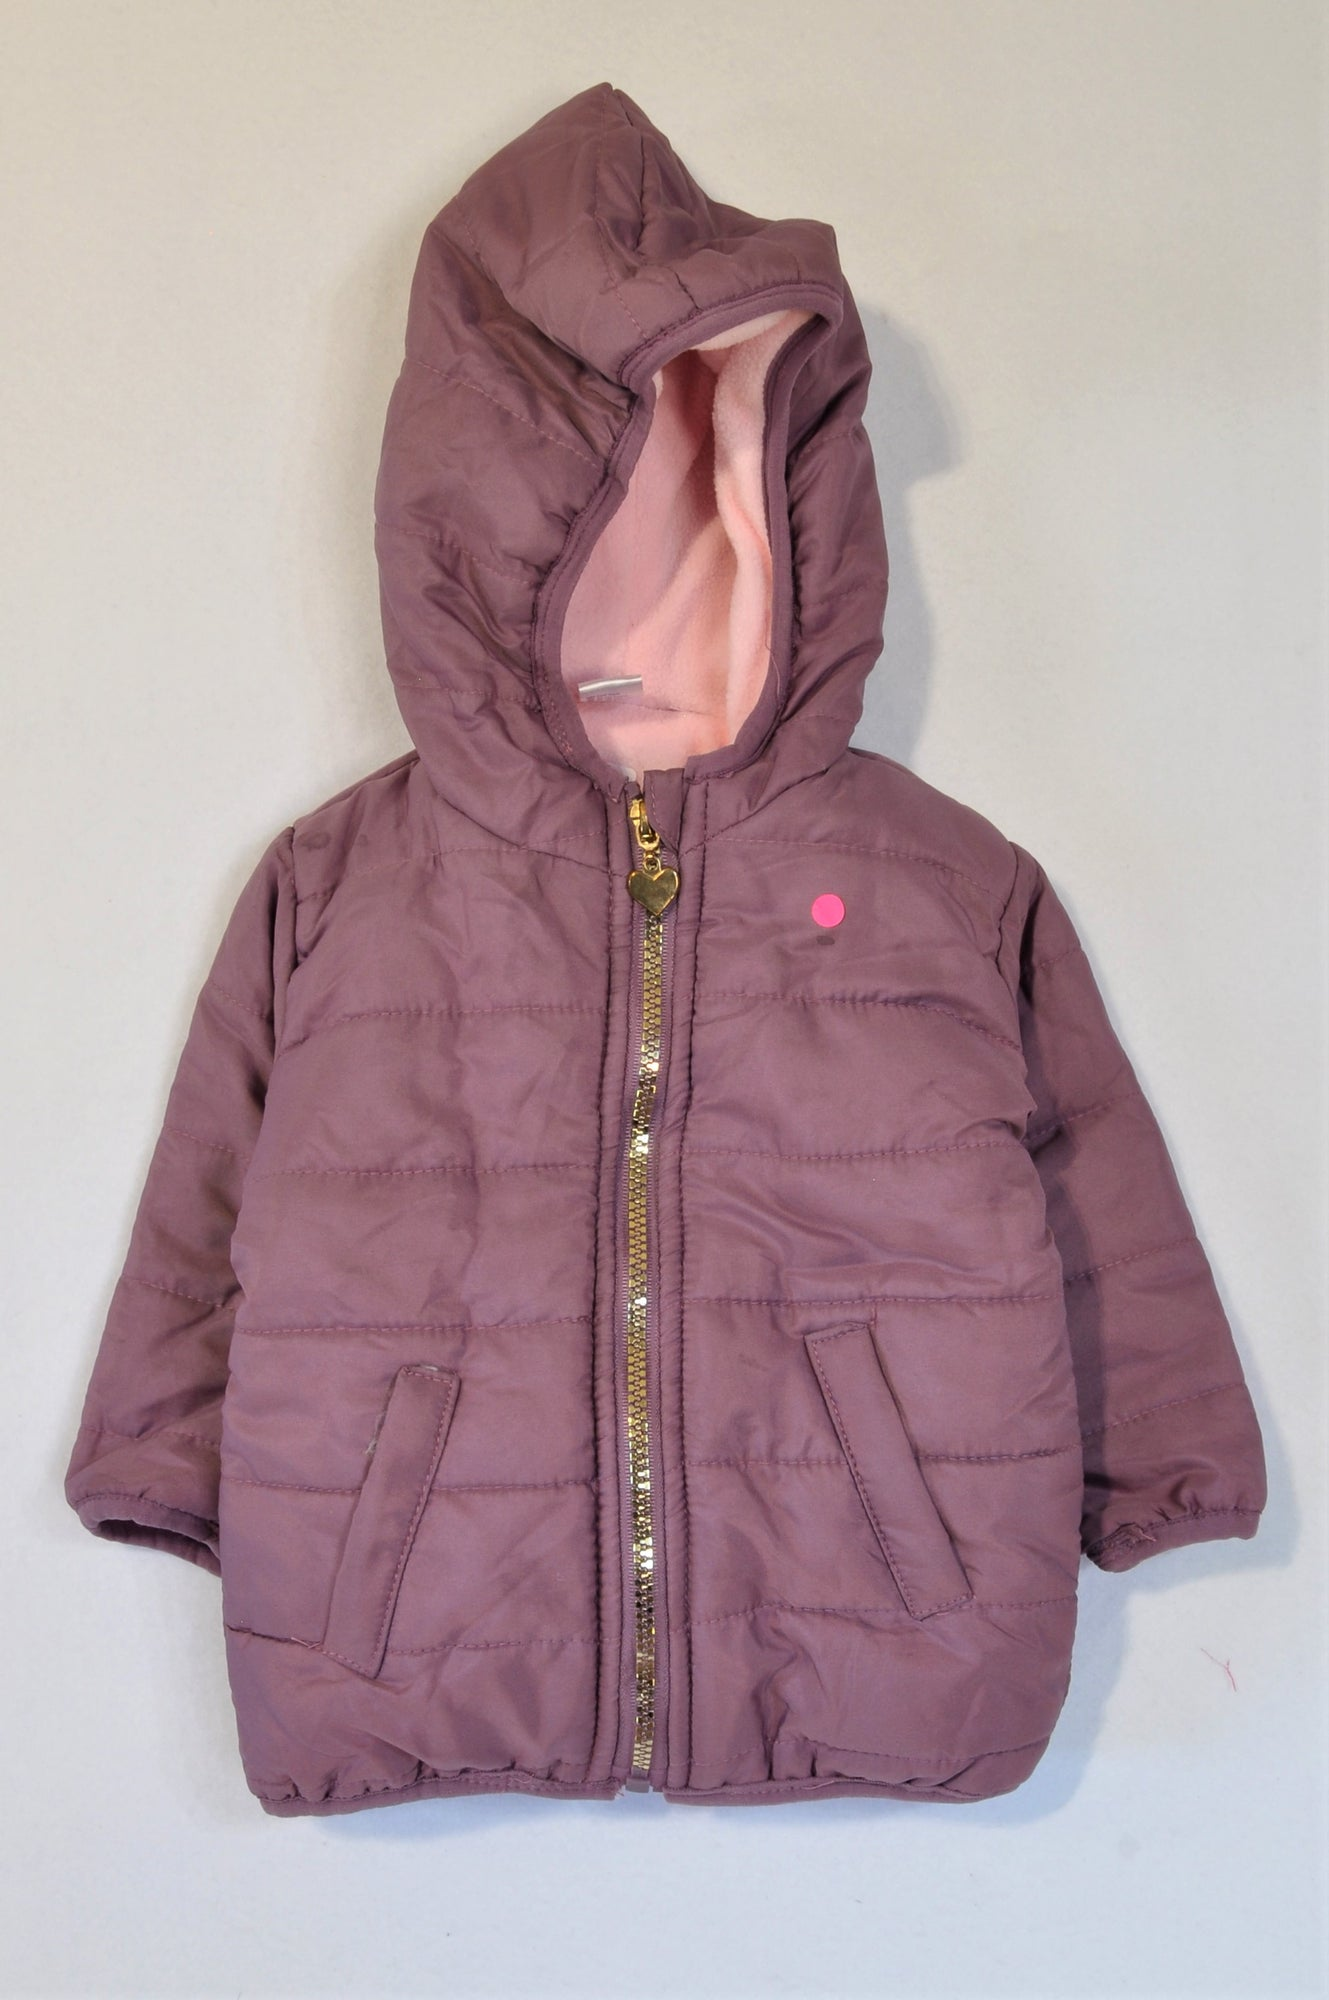 Ackermans Purple Pink Fleece Lined Puffer Jacket Girls 6-12 months